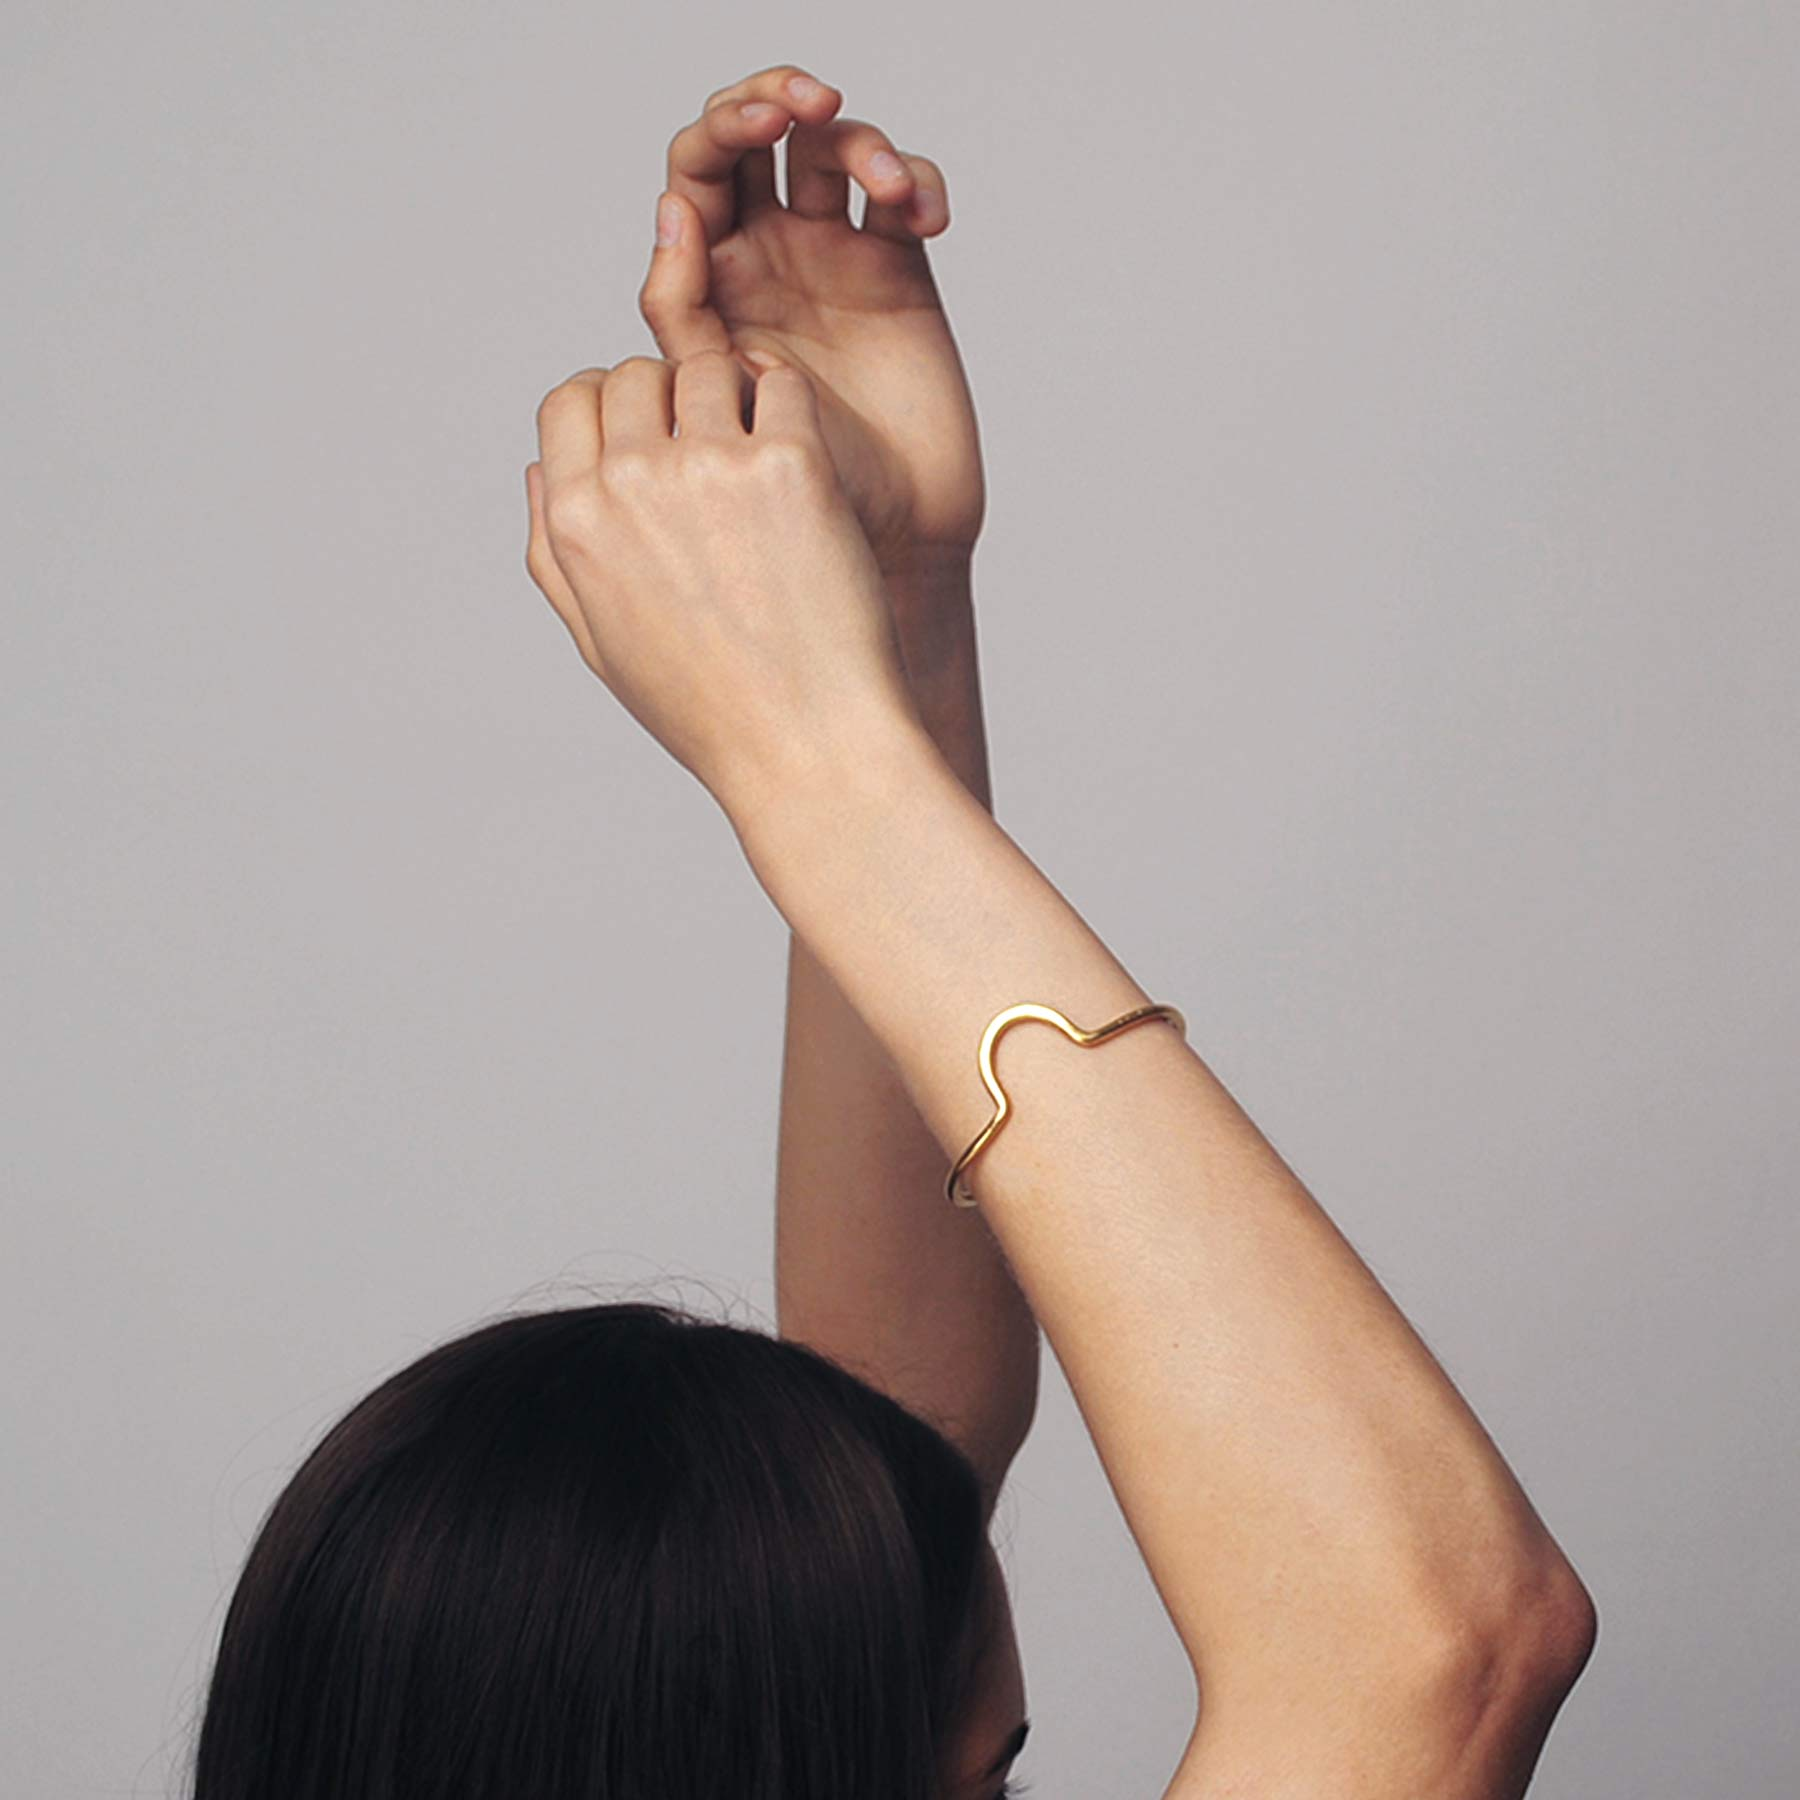 THE MAMA KIN SUNRISE BANGLE Hand made in the Mama Kin studio in Hungary, the simple hammered Sunrise bangle from Solaris collection is created of one piece of curved line with a curve on top to achieve playful yet minimal look.